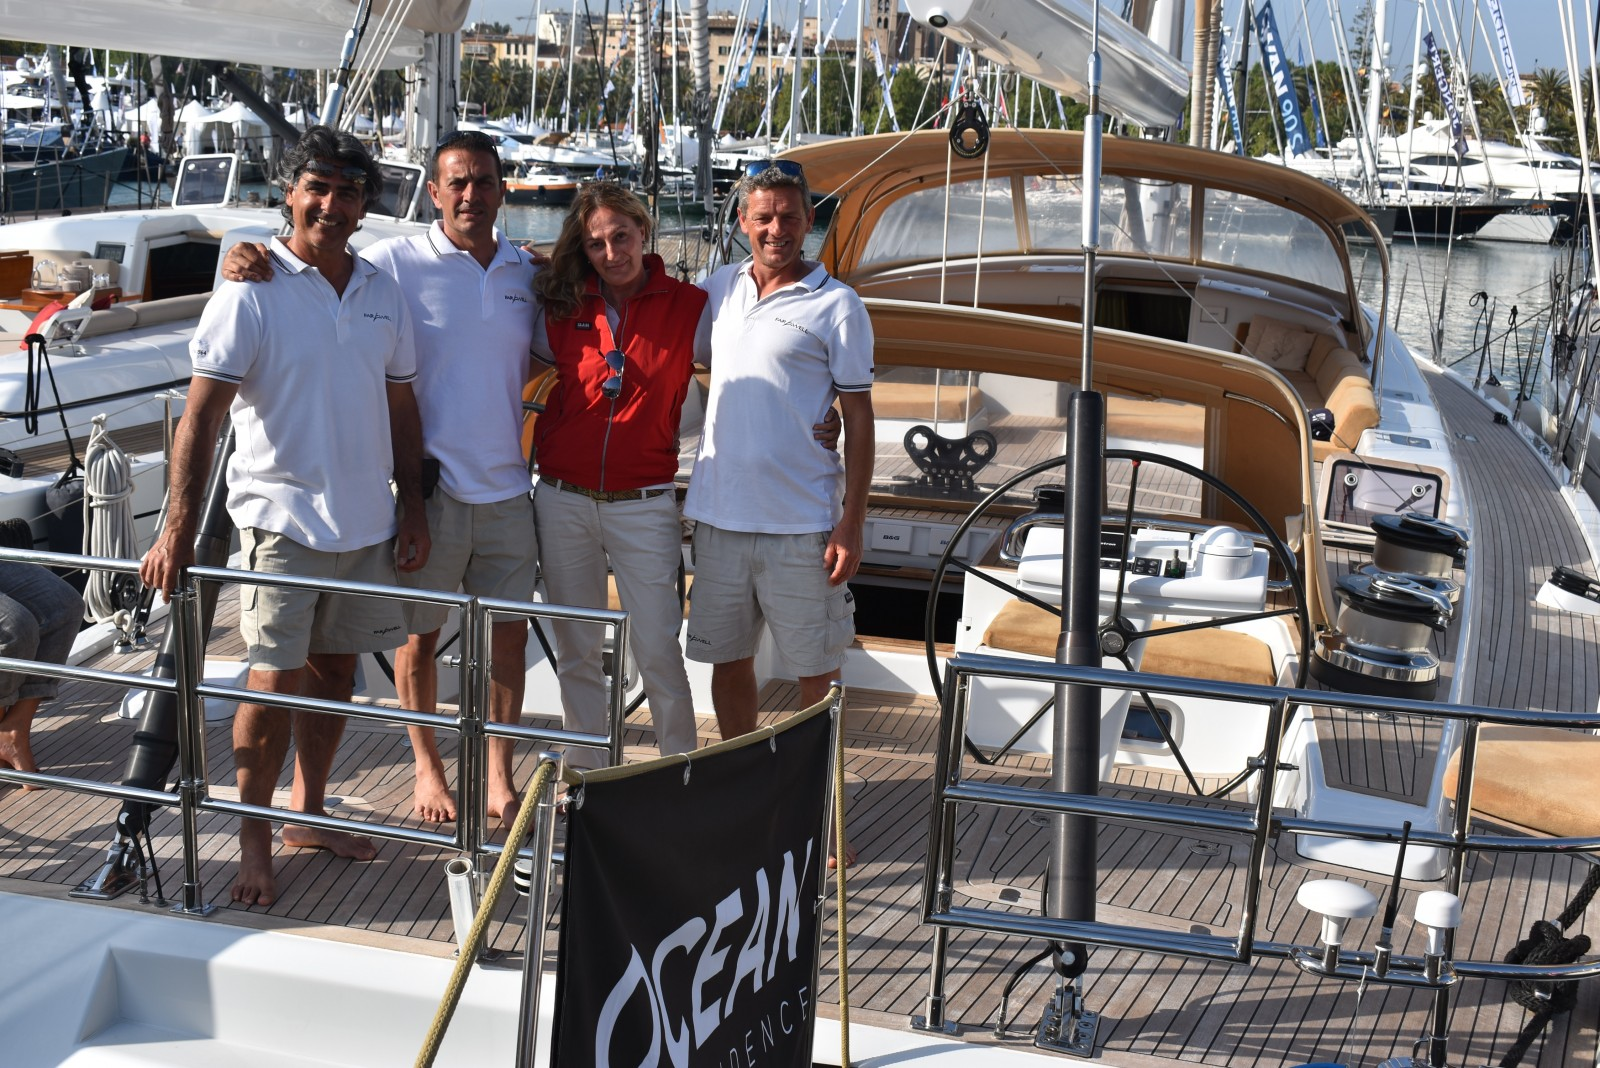 Palma18: Visitors, seminars keep show crew busy